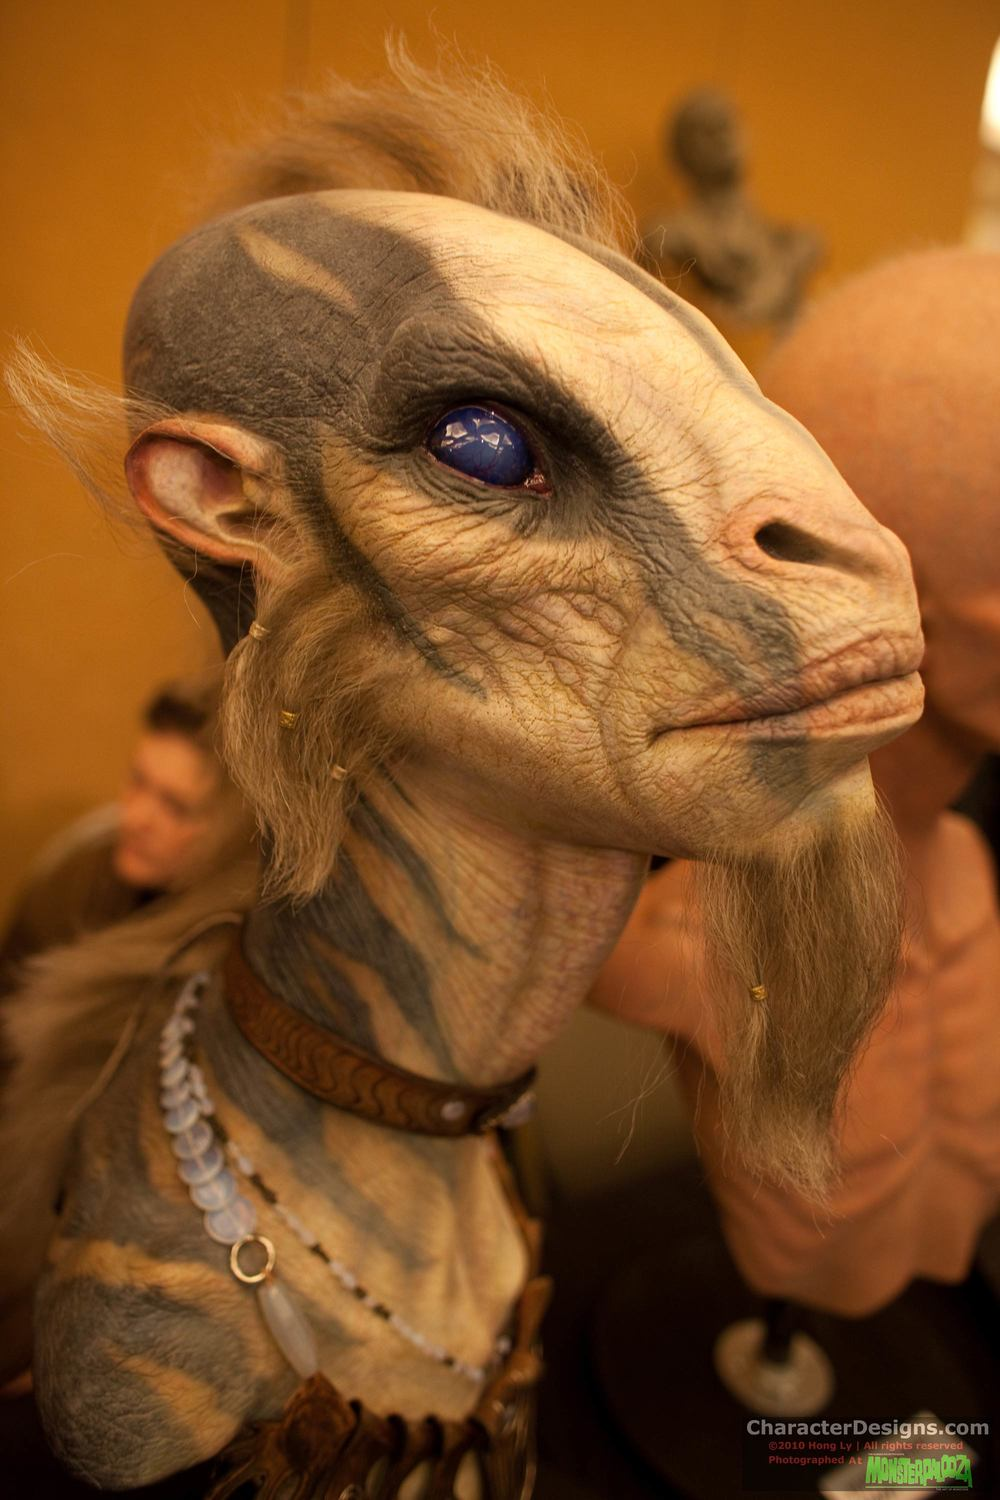 2010_Monsterpalooza_152.jpg